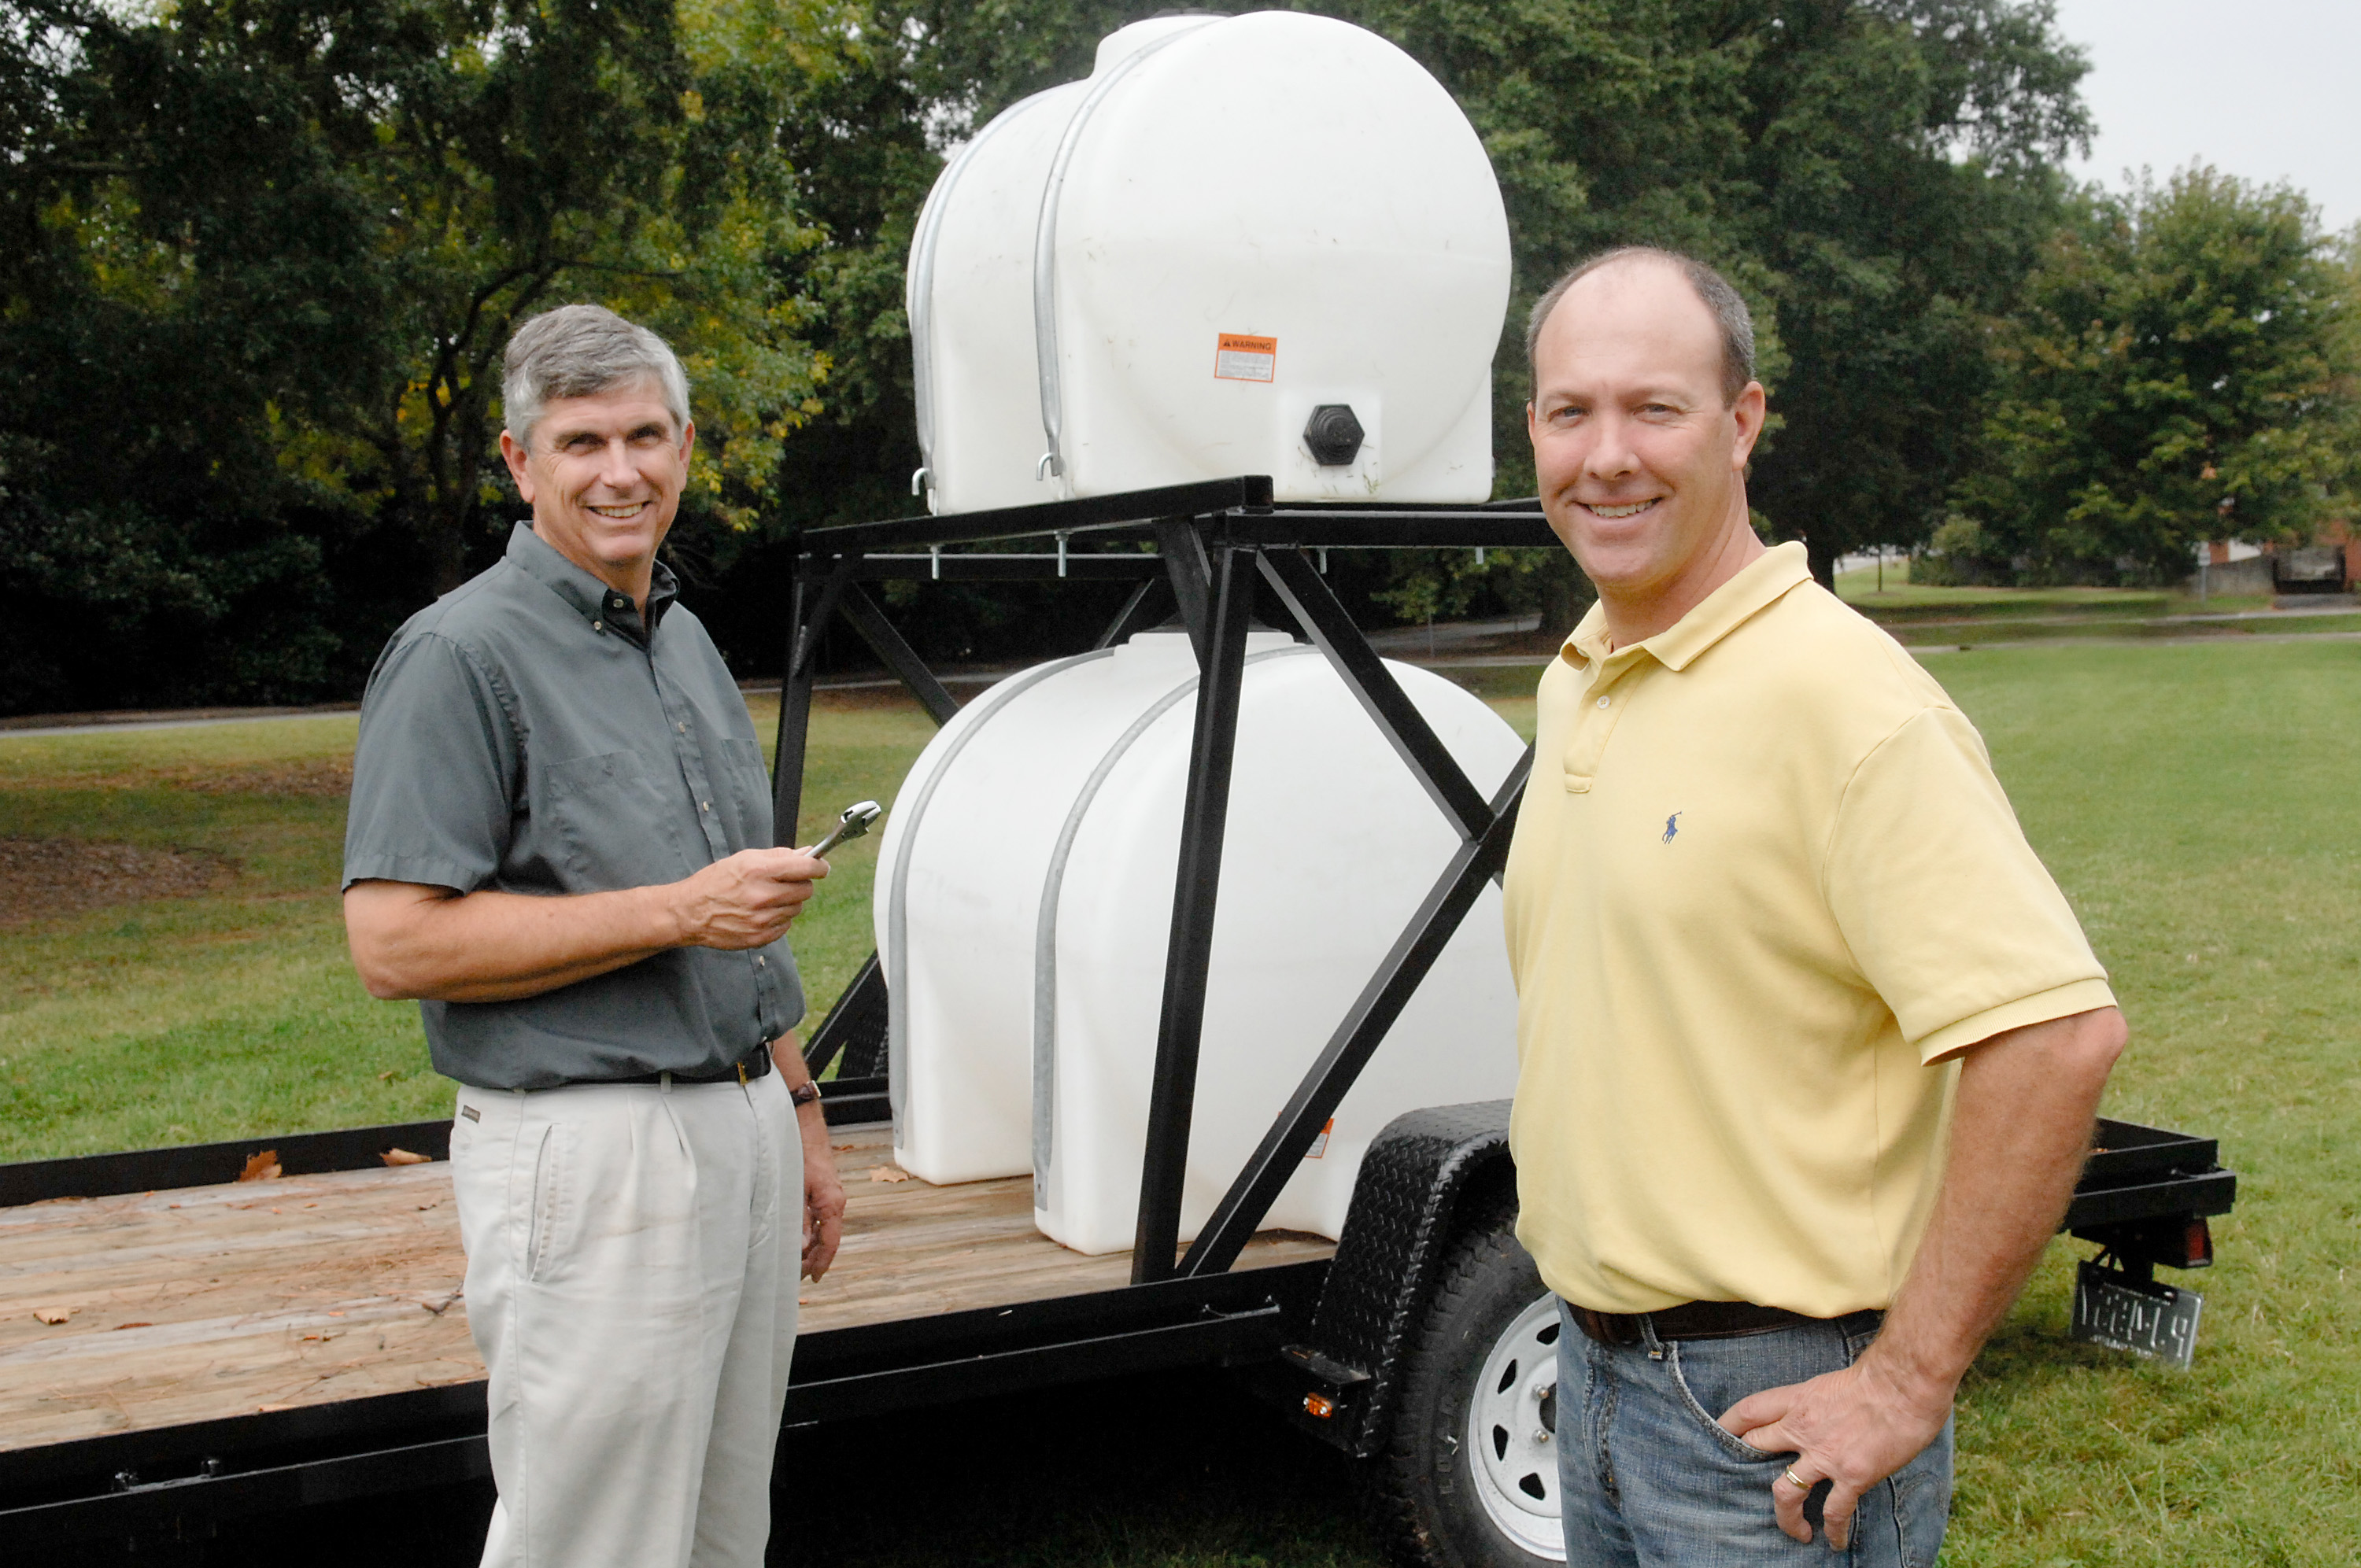 (L-R) Dr. Gary Roberson and Rod Gurganus lead the effort to develop more functional, portable hand-washing stations for N.C. growers. They are developing two units (a larger and smaller version) with funding from the N.C. Rural Economic Development Center's Agricultural Advancement Consortium. *The unit pictured is not a completed product.